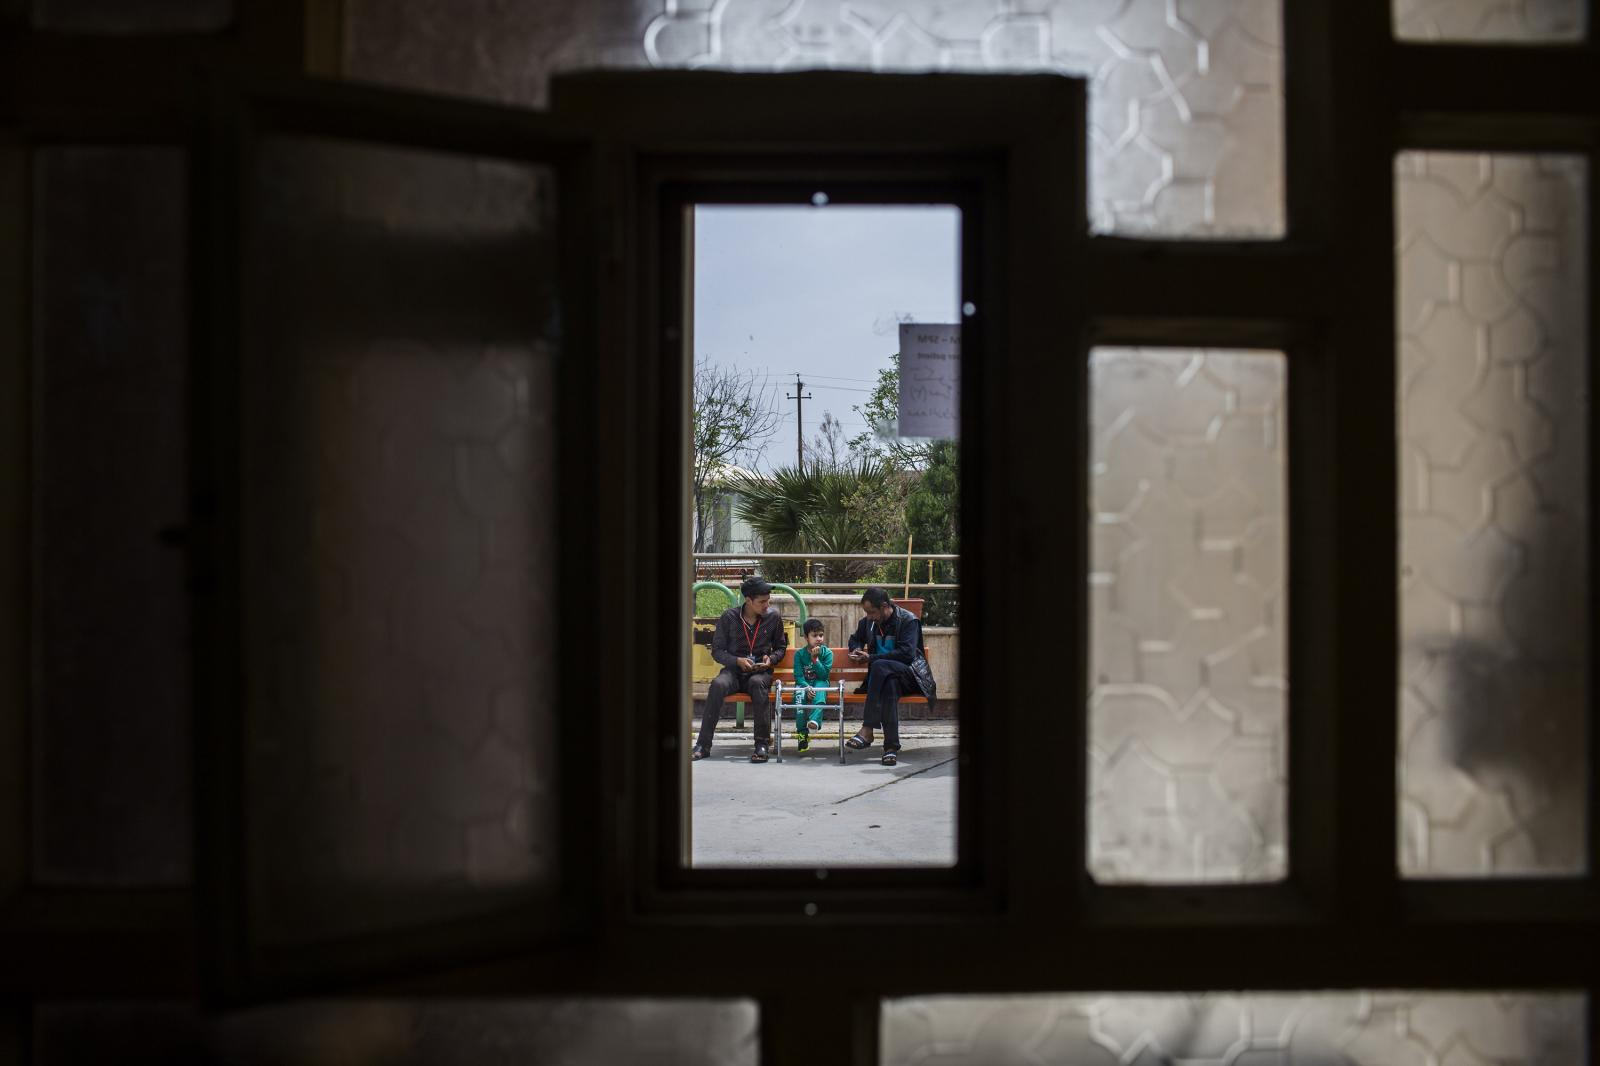 Patients are seen through a window of the Post-op hospital in Hamdaniya, Iraq 2017. Diego Ibarra Sánchez for MSF